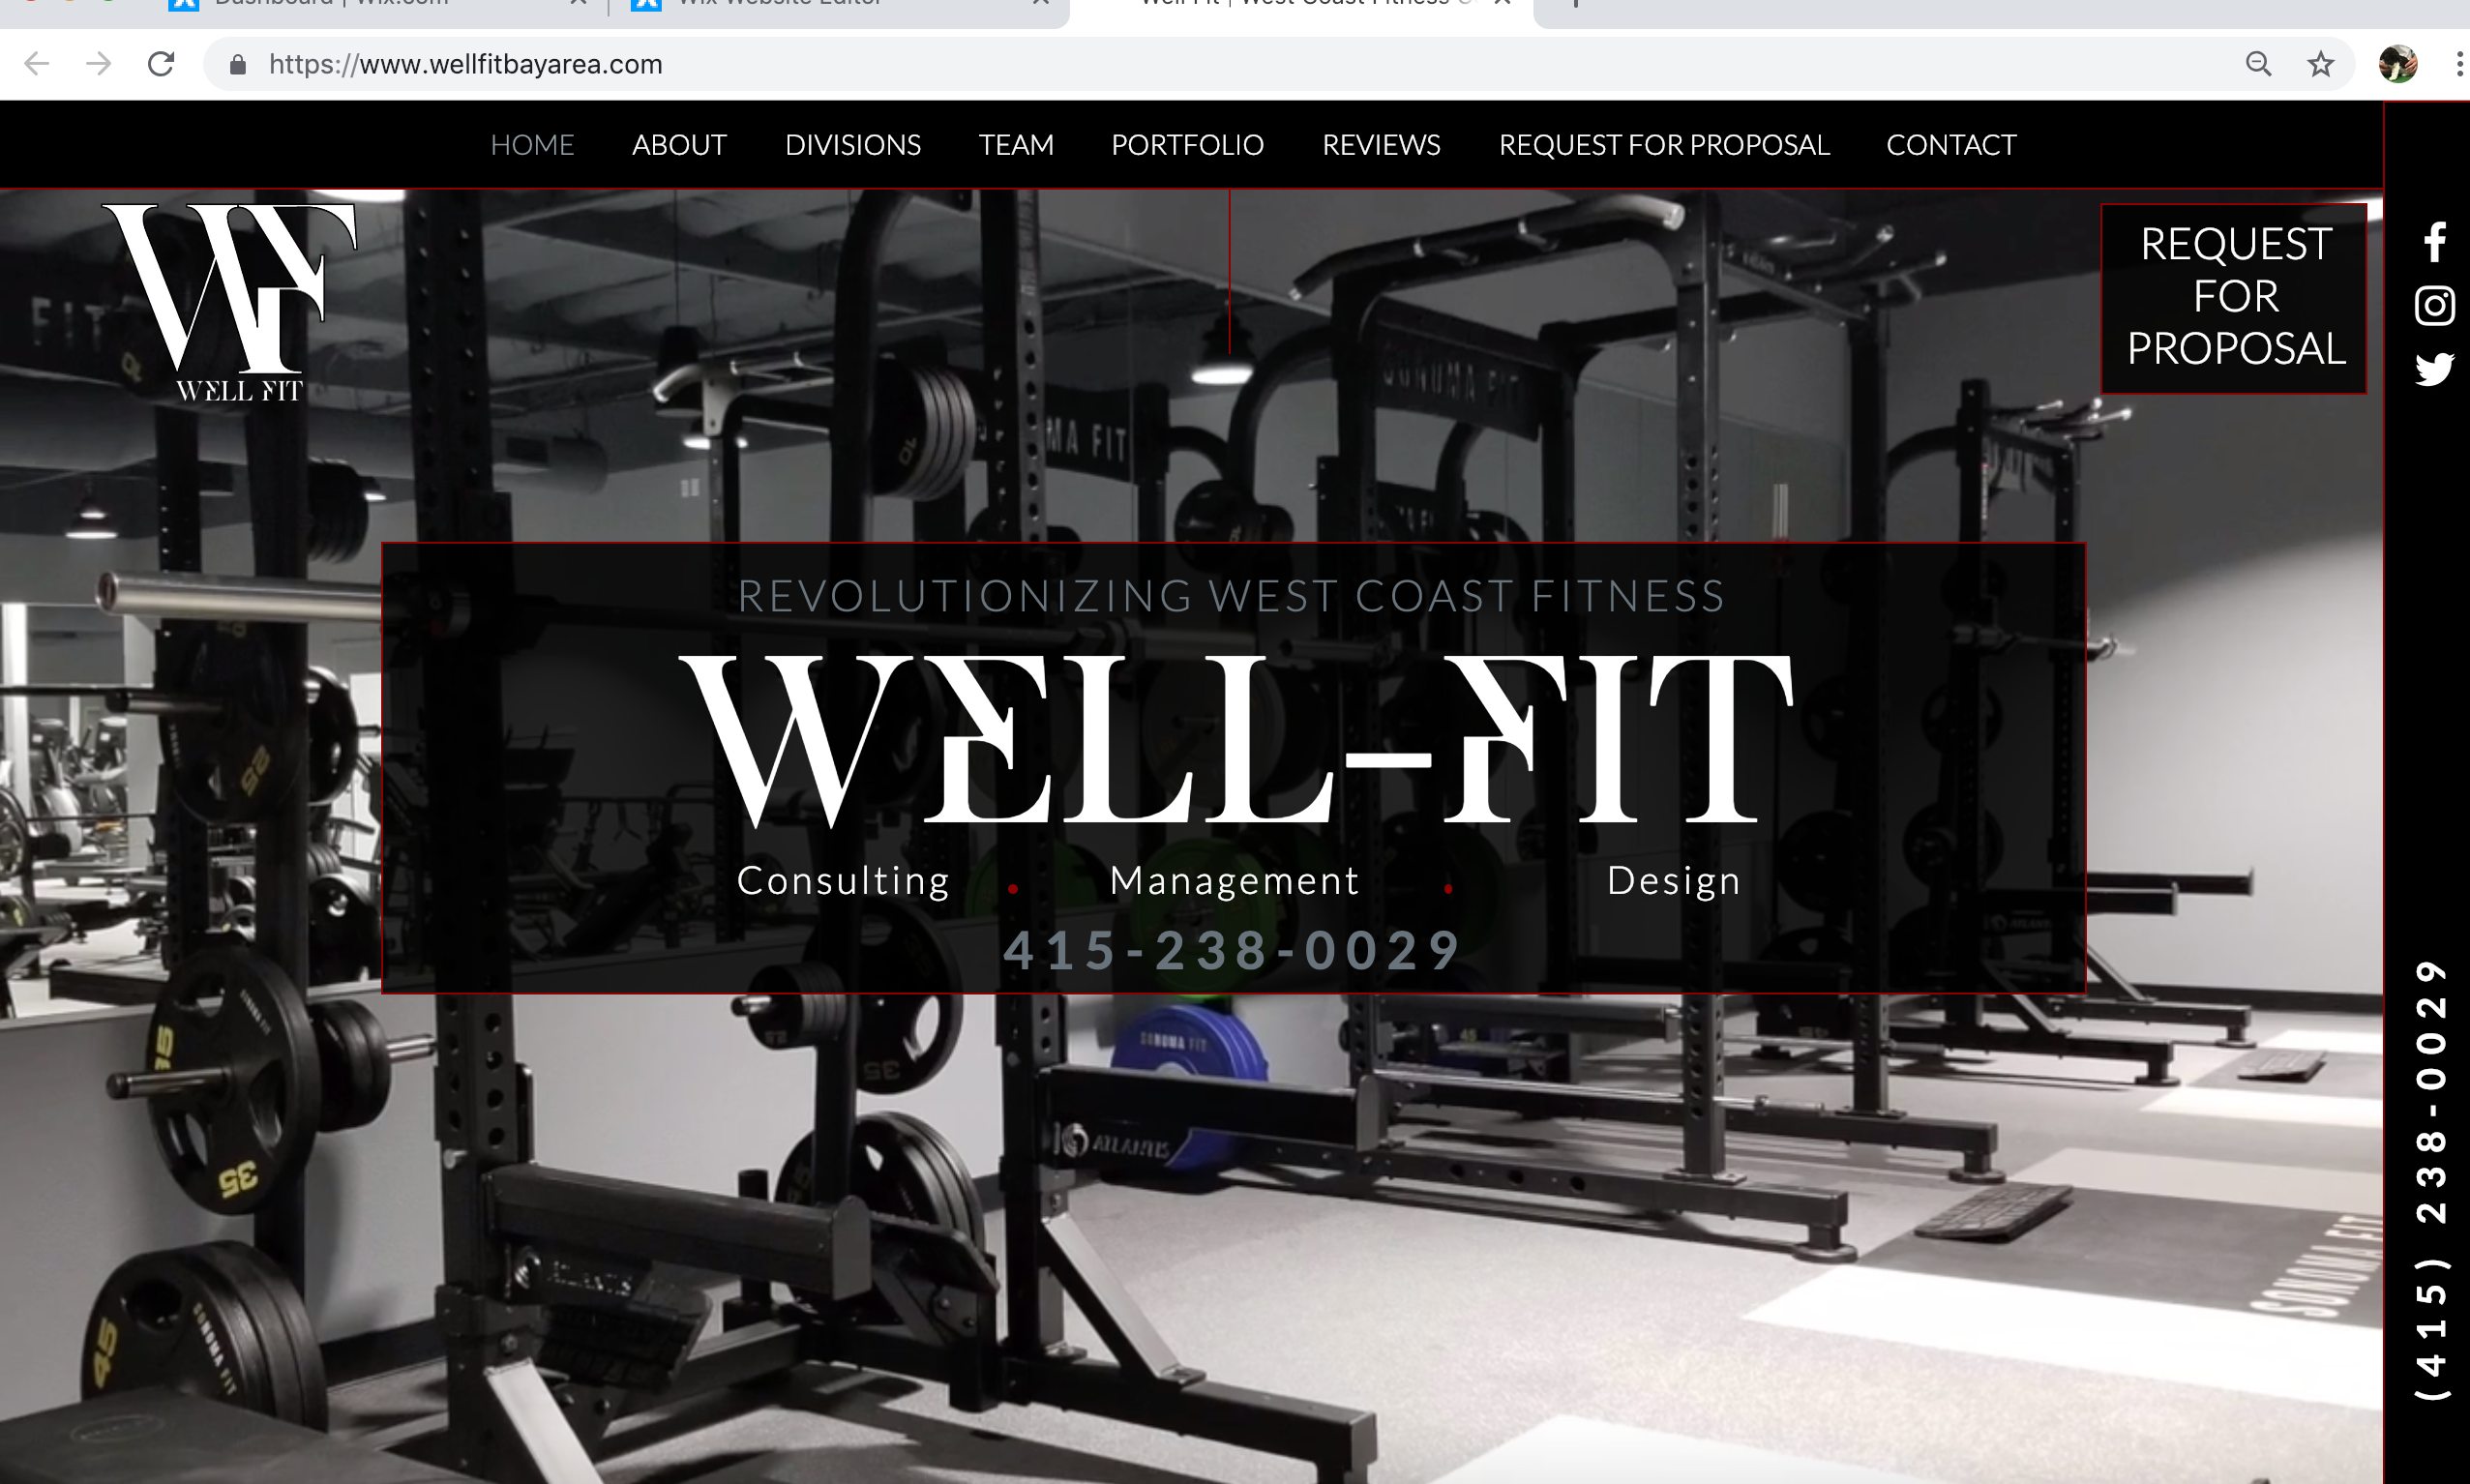 Well fit west coast fitness consultant